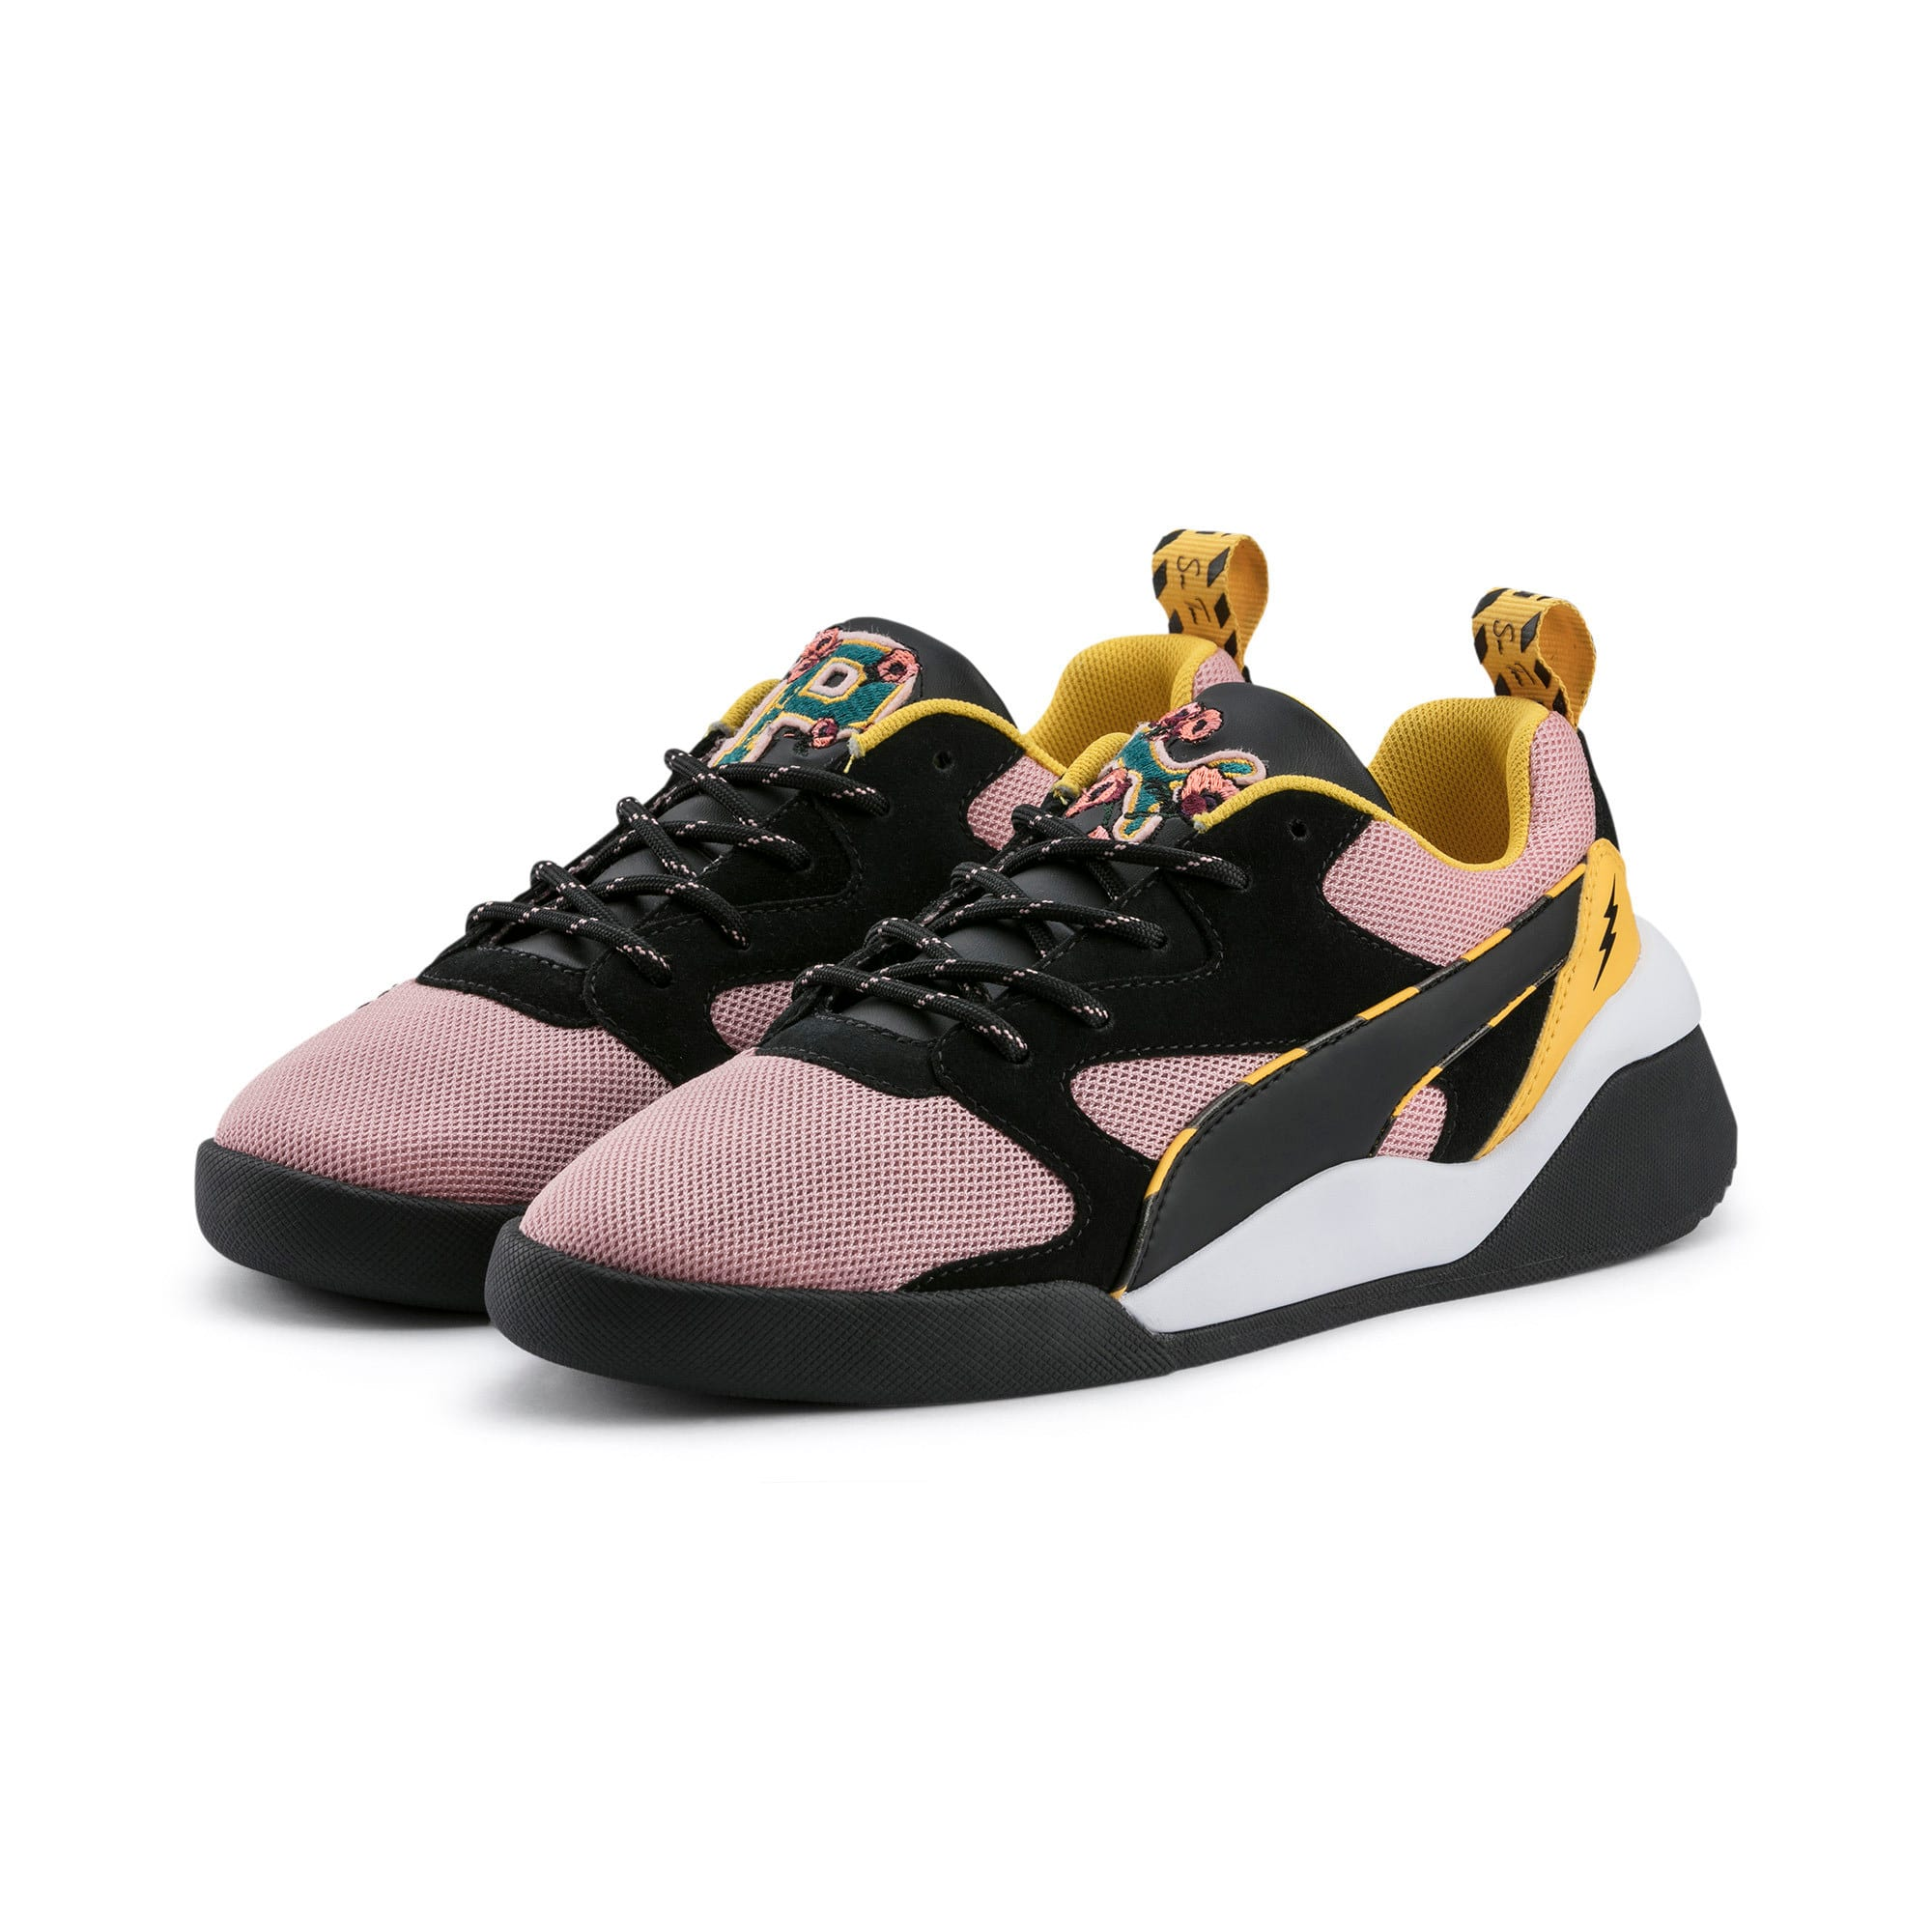 Thumbnail 2 of PUMA x SUE TSAI Aeon Women's Sneakers, Bridal Rose-Puma Black, medium